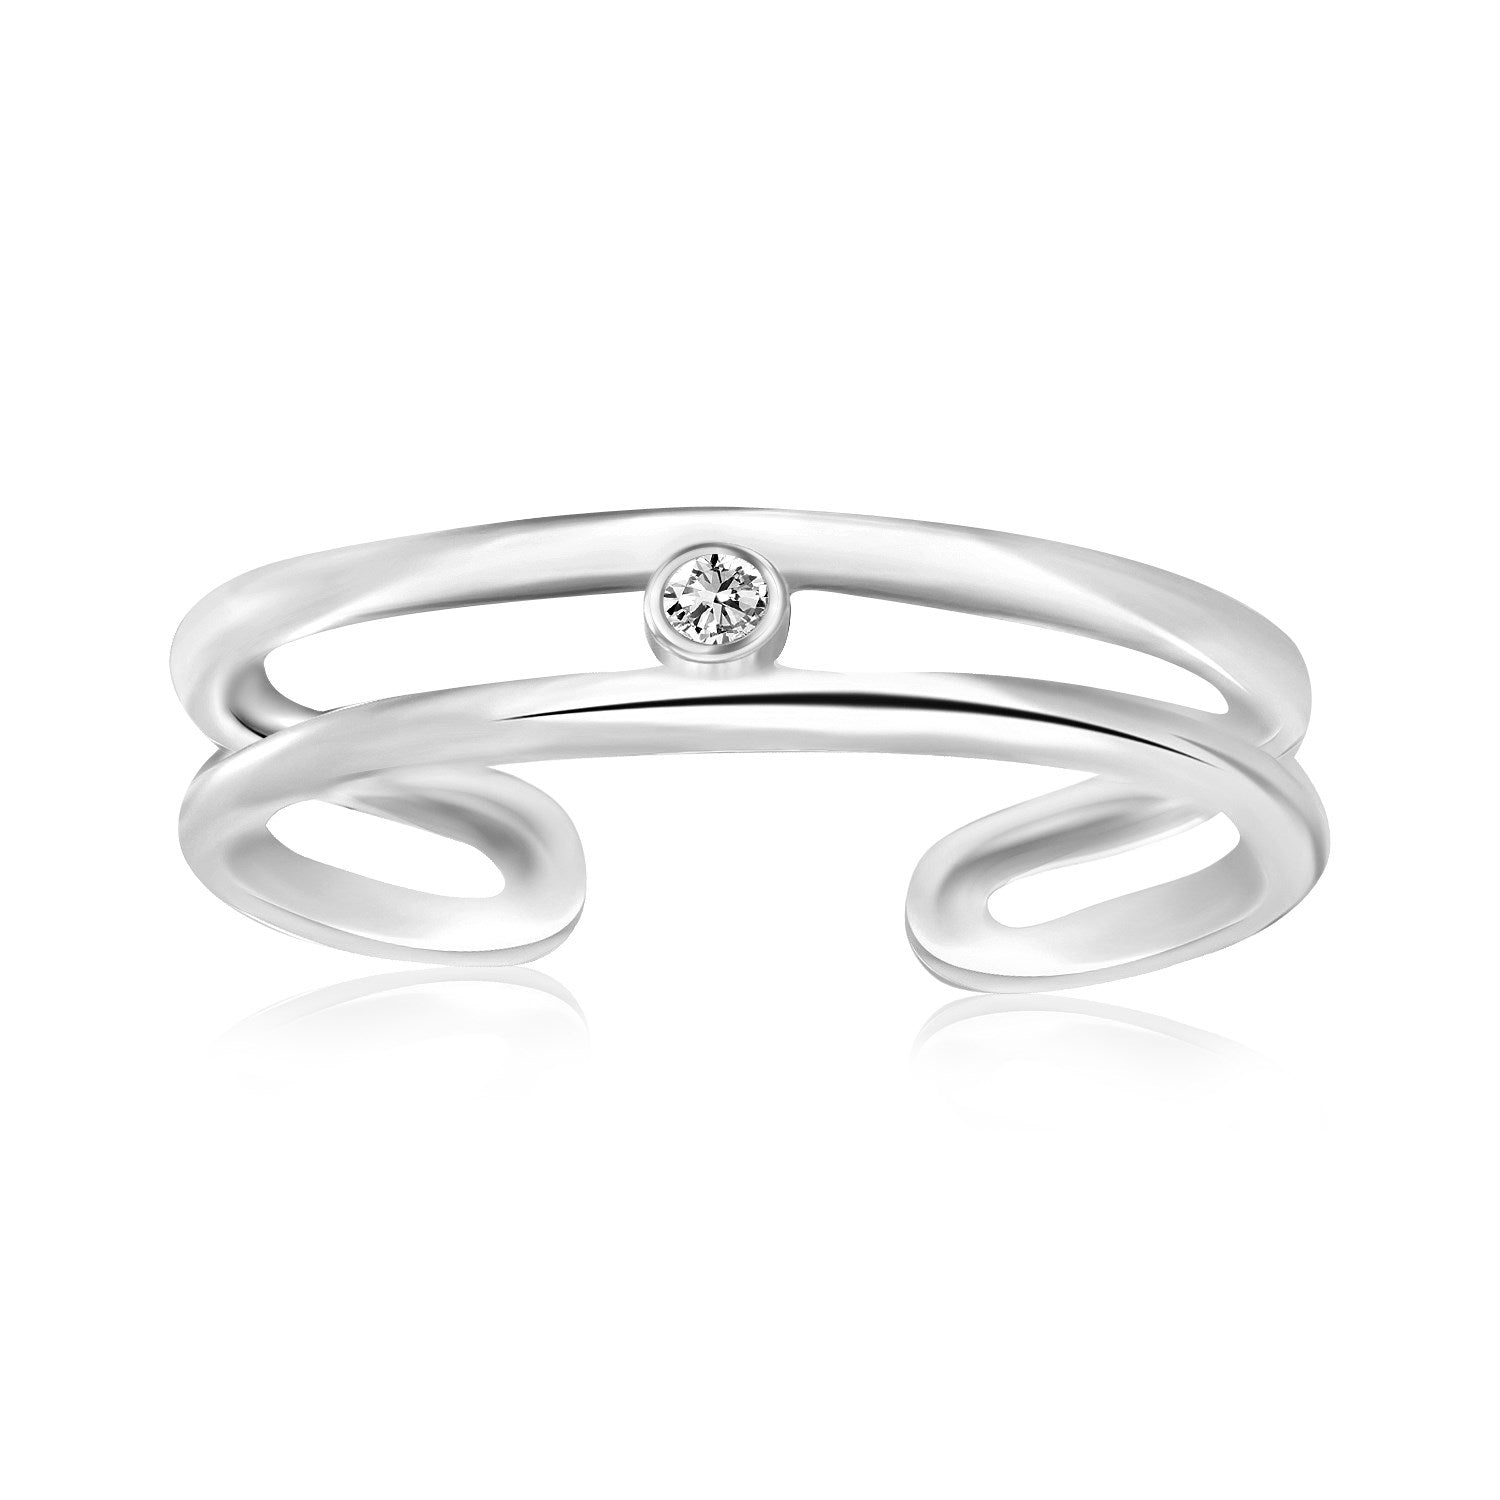 Sterling Silver Rhodium Plated Dual Open Style Cubic Zirconia Accented Toe Ring - Uniquepedia.com